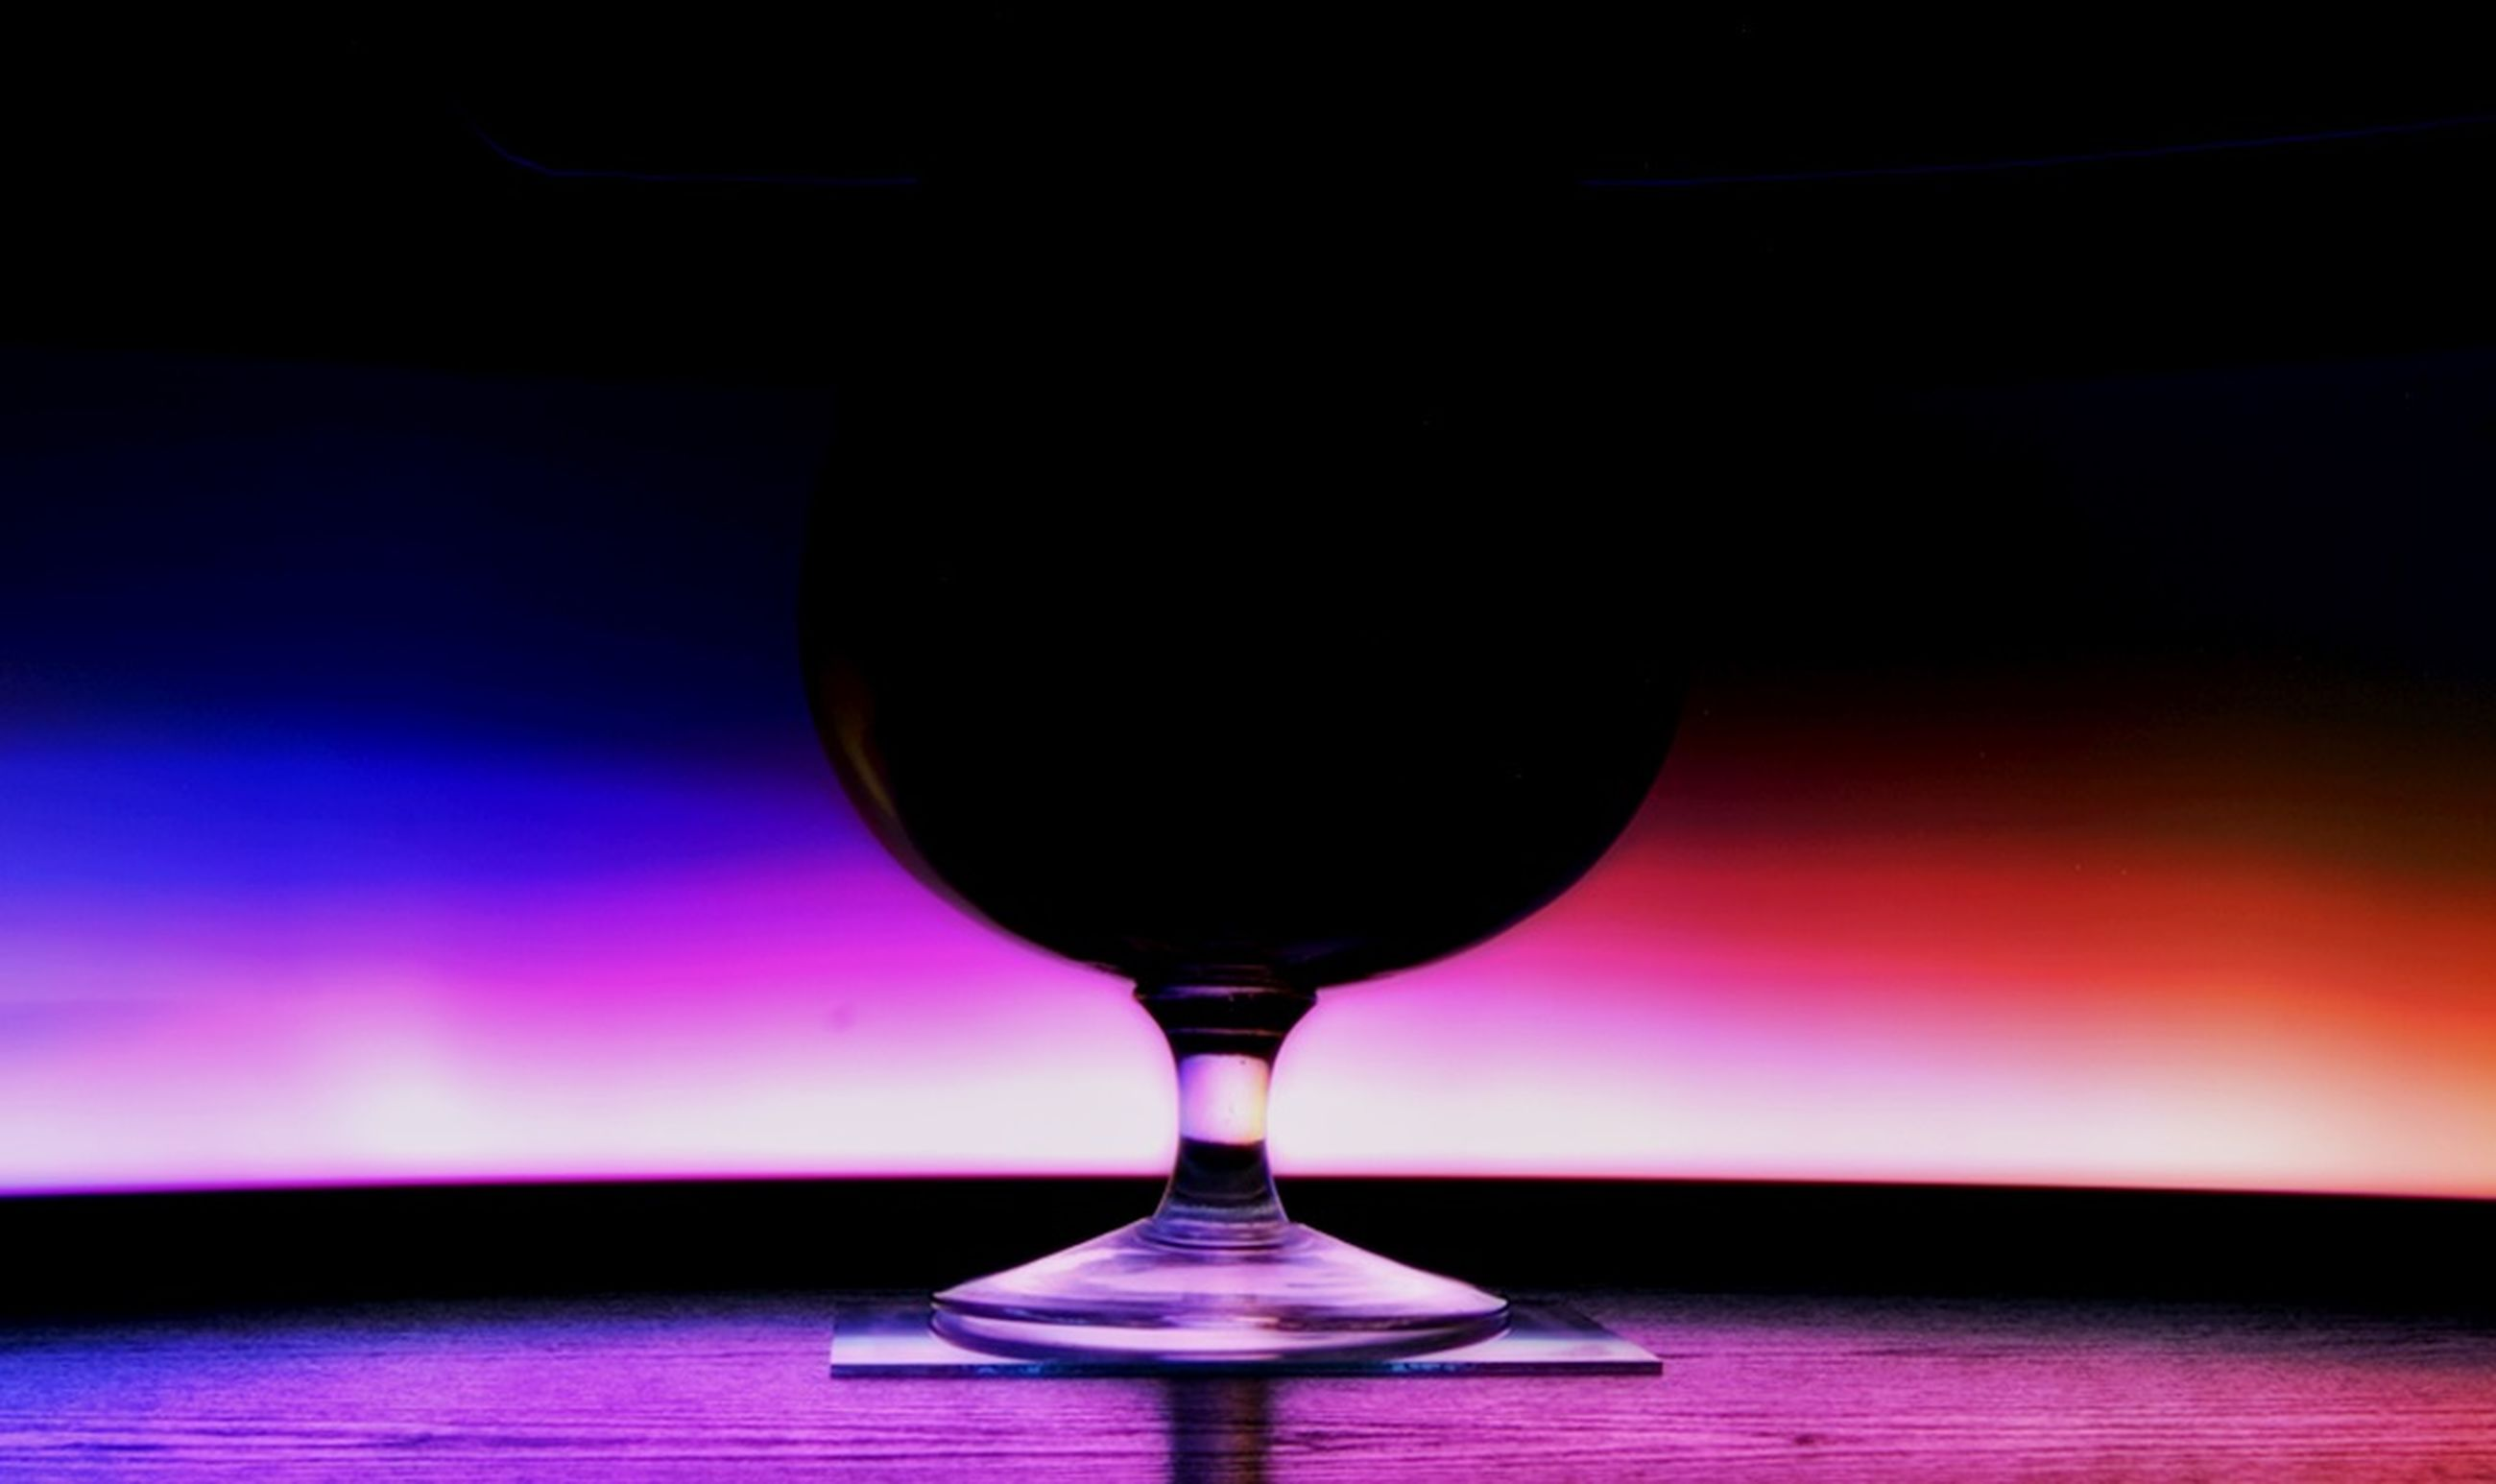 indoors, illuminated, table, still life, close-up, lighting equipment, wineglass, red, drink, drinking glass, refreshment, lit, food and drink, single object, alcohol, focus on foreground, no people, glass - material, wine, selective focus